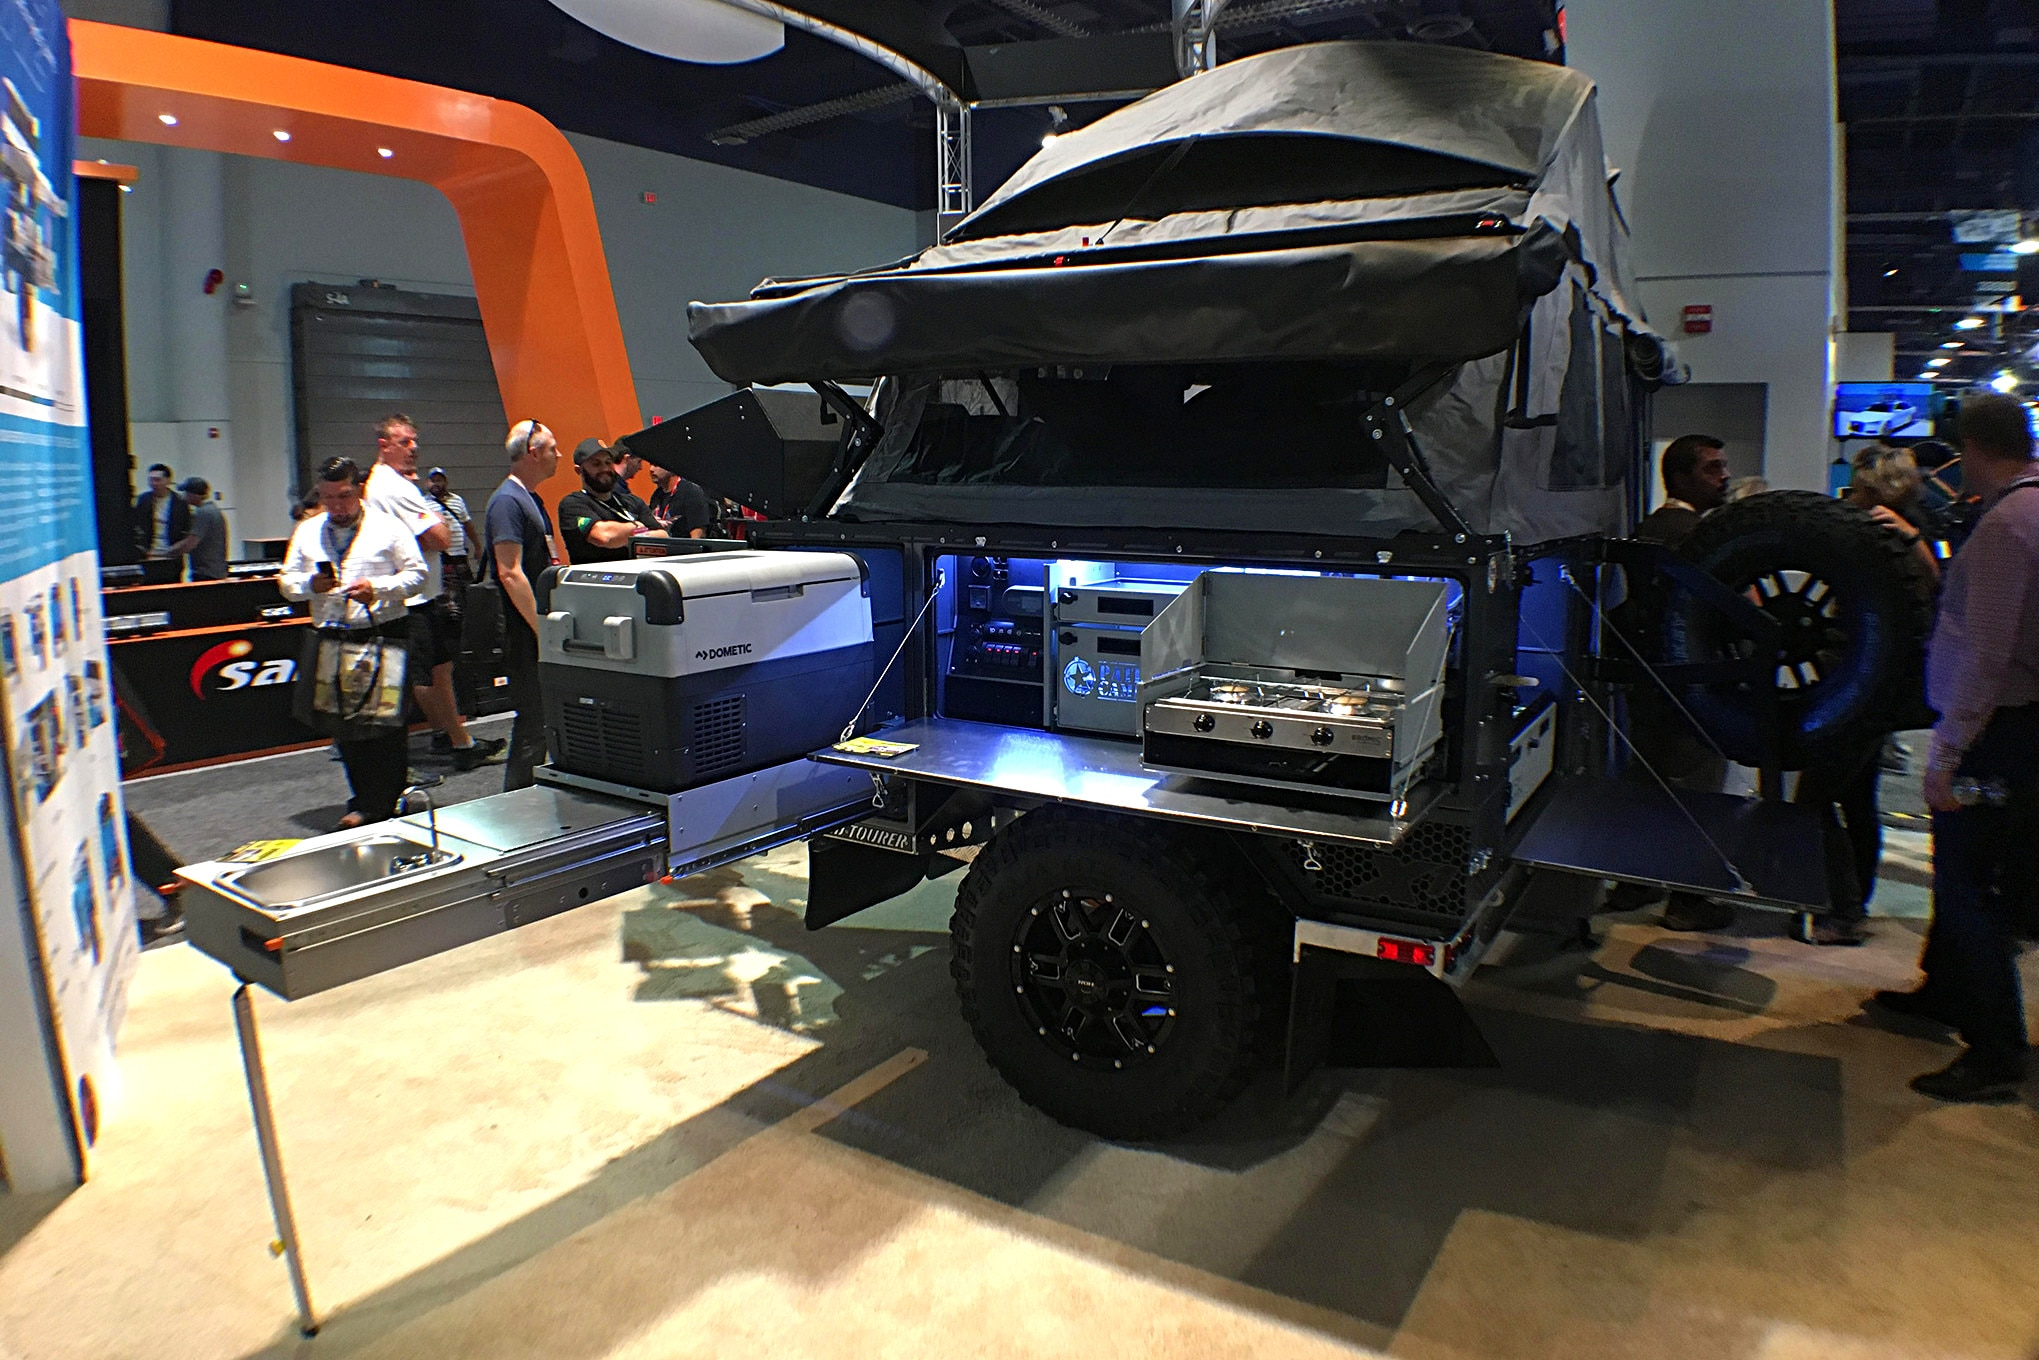 There were a lot of overlanding rigs on display. Everything from trucks to trailers like this had all ready to go extreme camping.